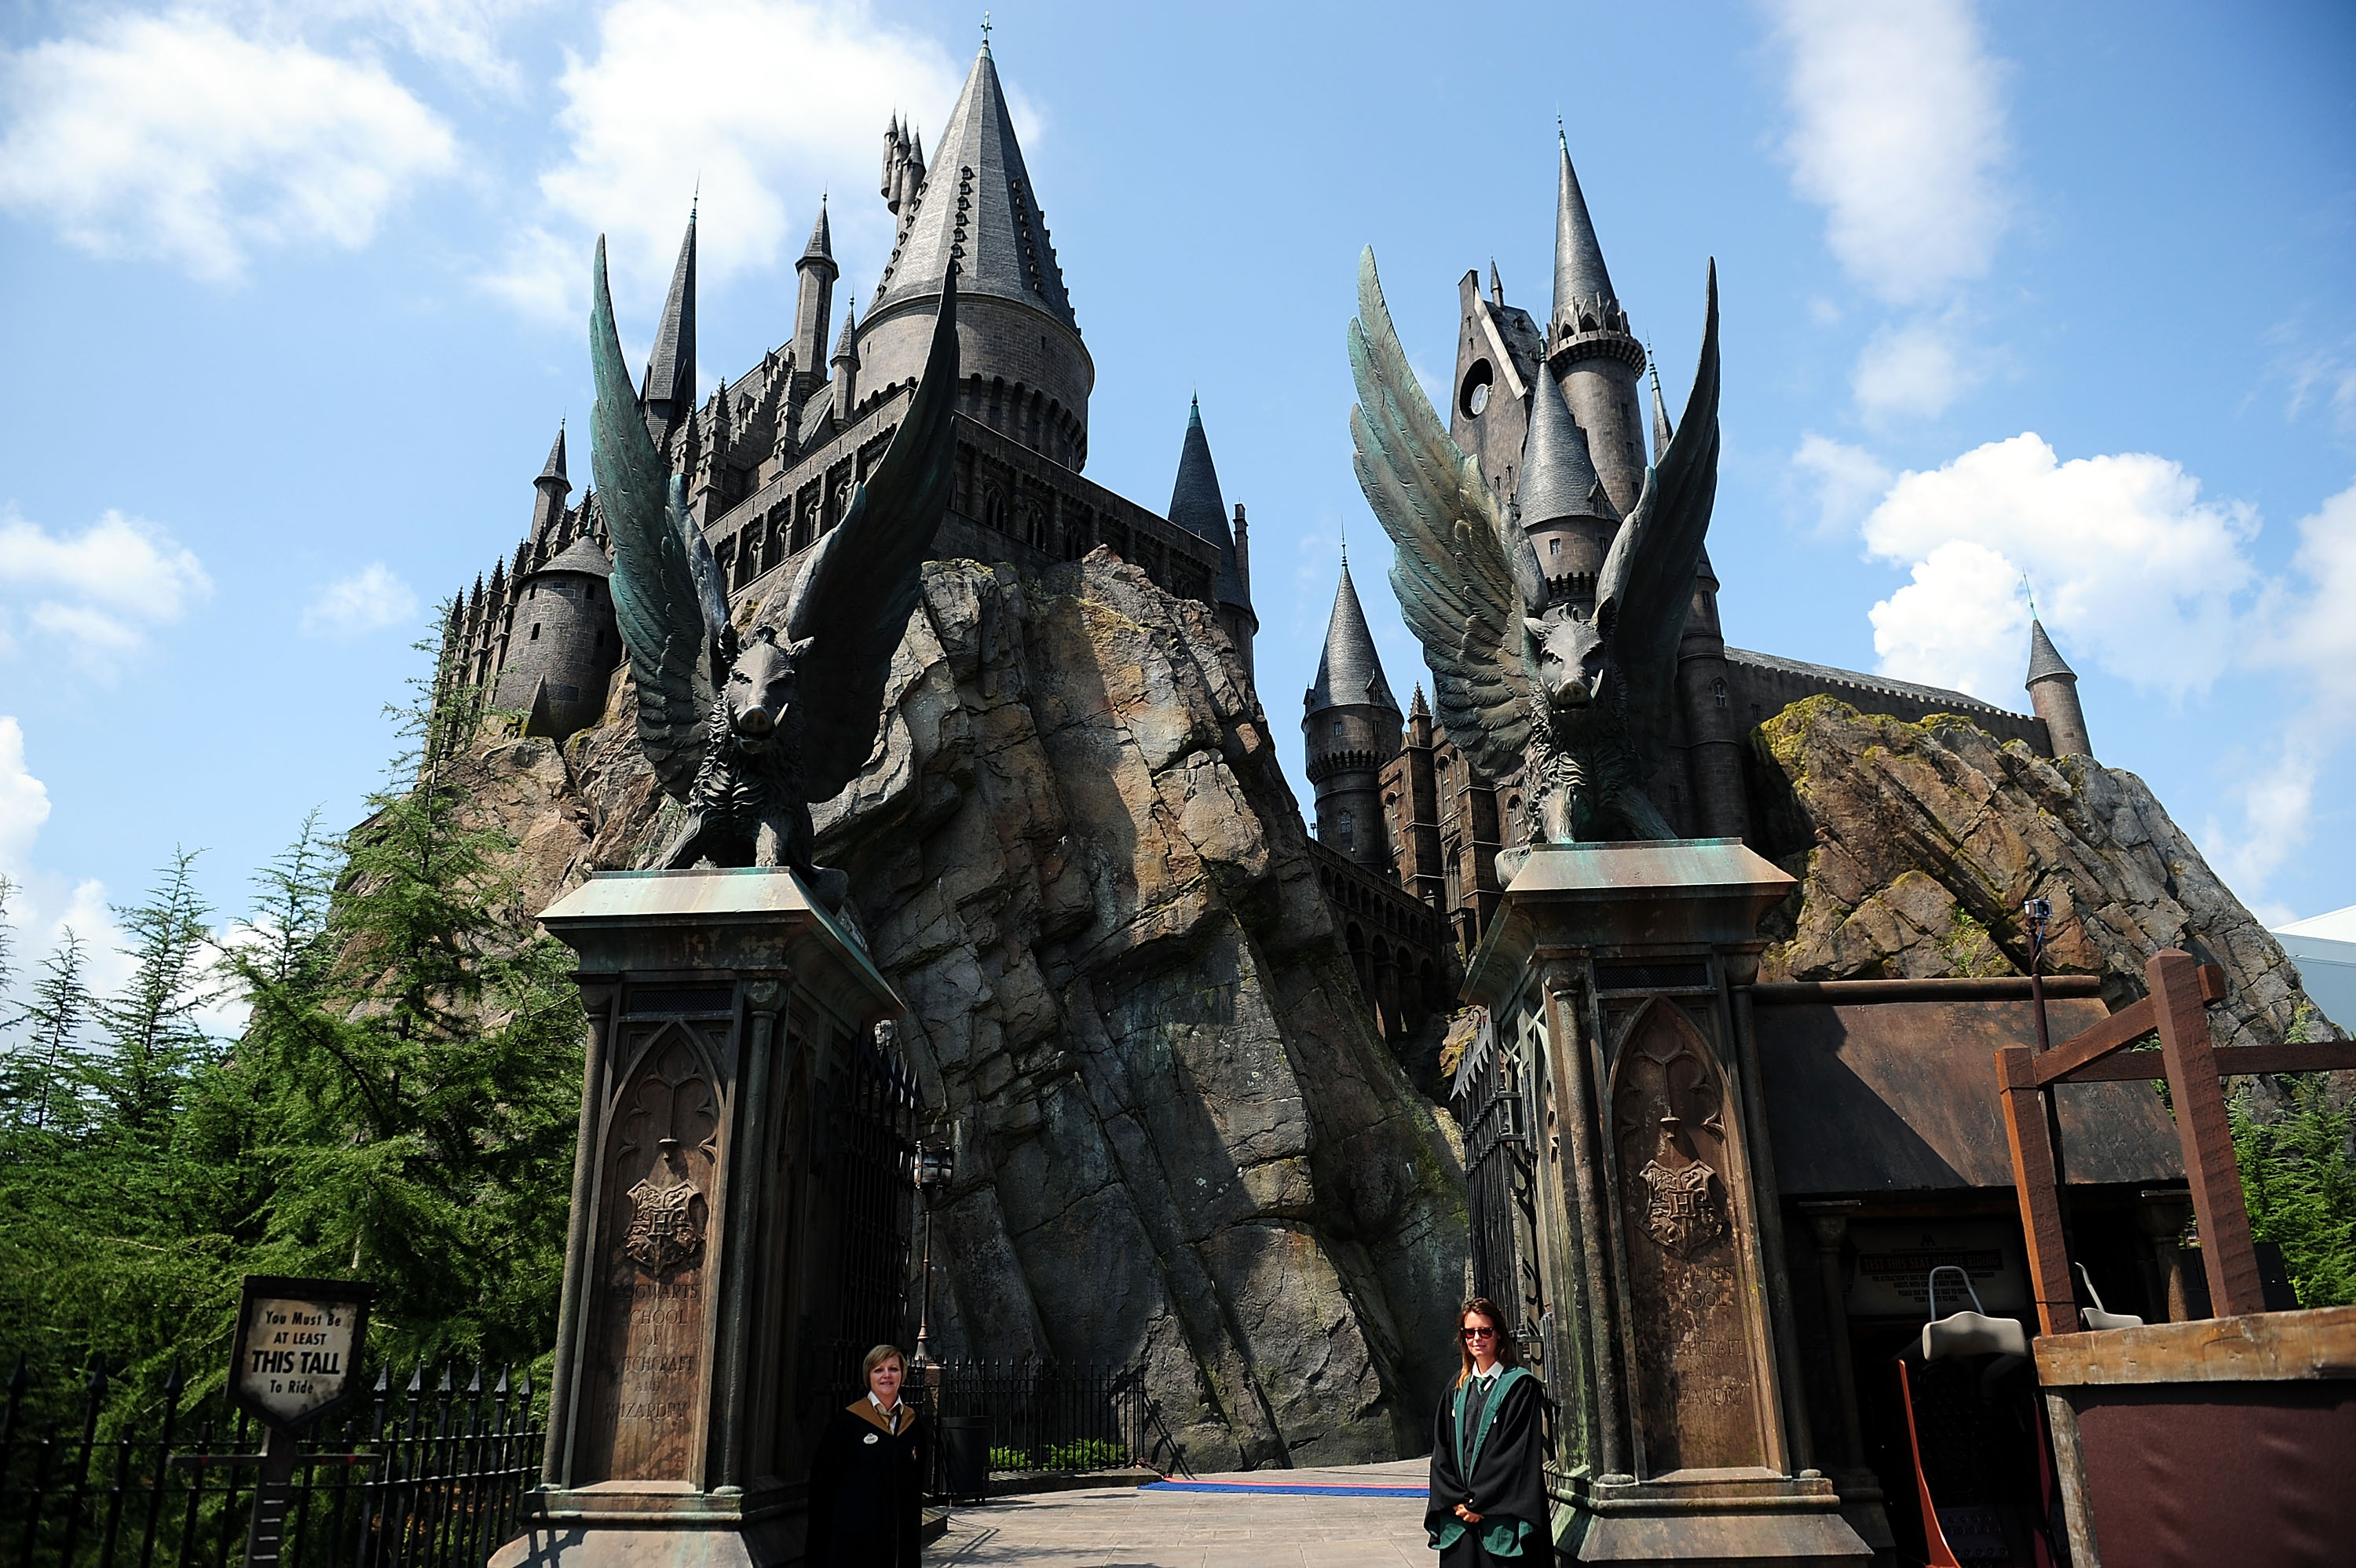 General view at the Grand Opening of The Wizarding World of Harry Potter at Universal Orlando on June 17, 2010 in Orlando, Florida.